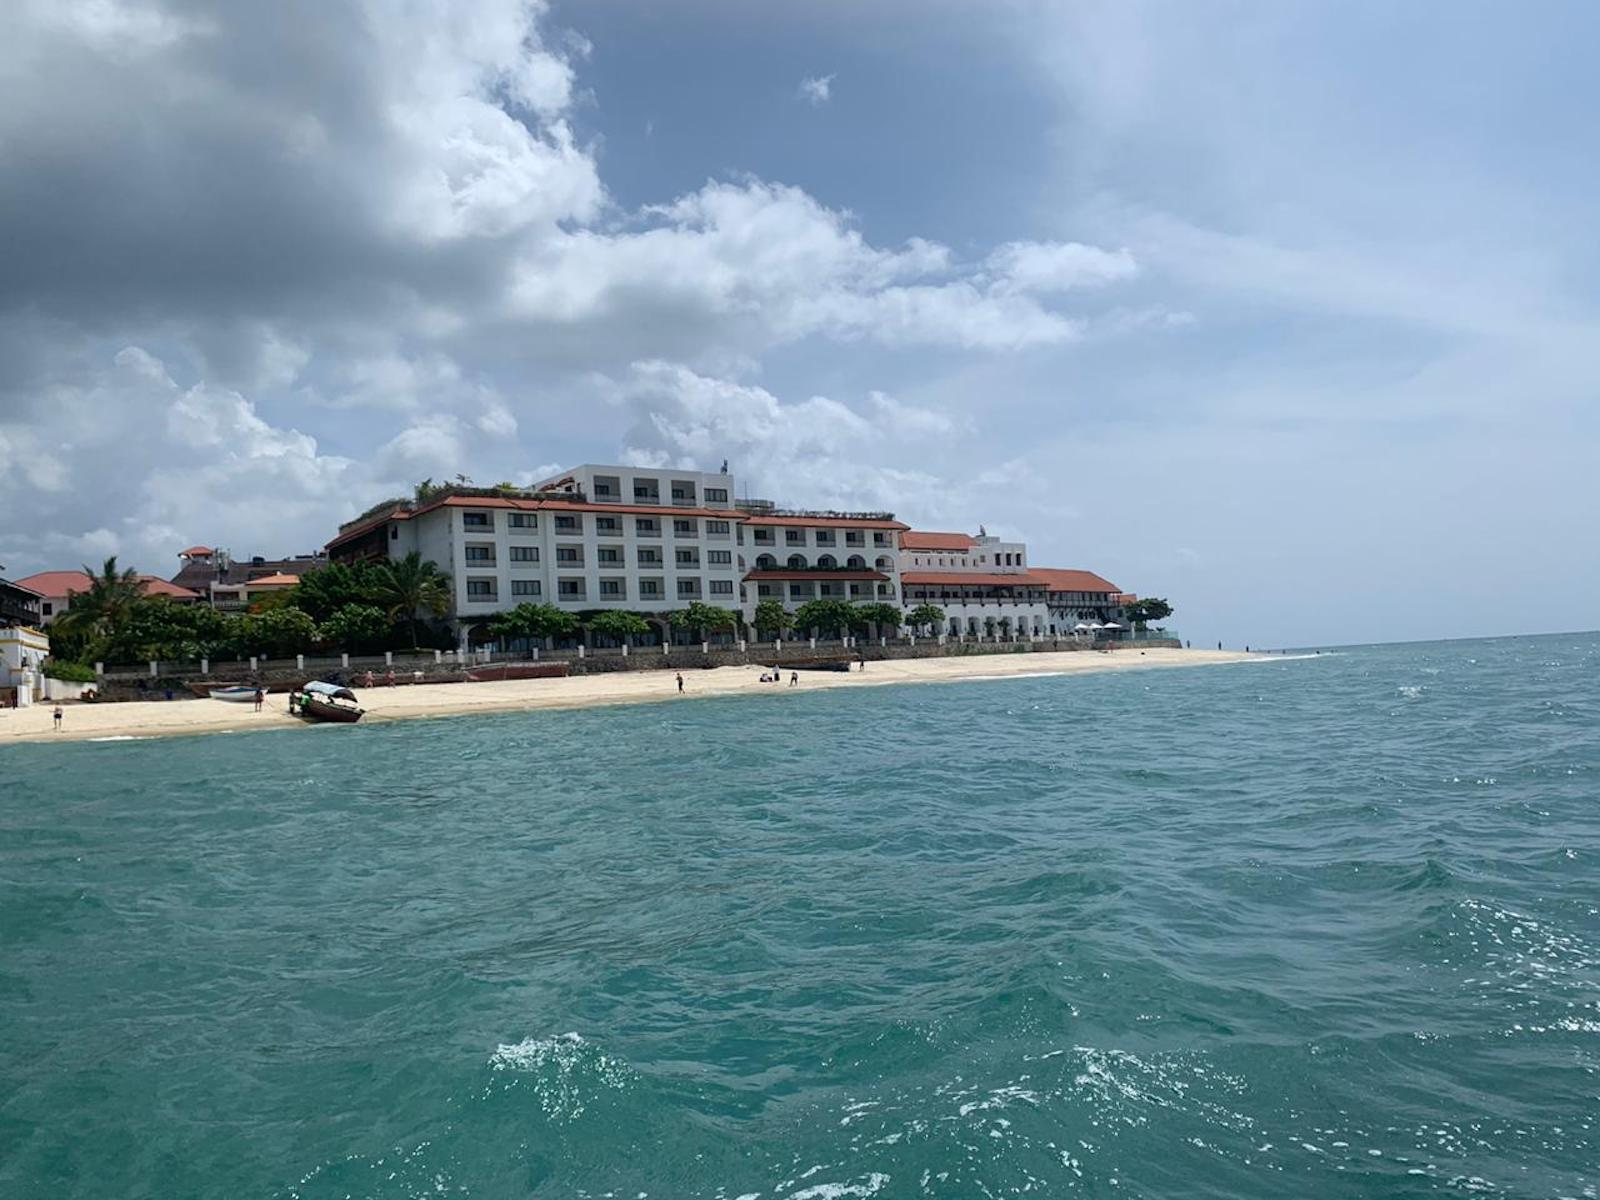 Park Hyatt Zanzibar Review - I Think Our Room Was Cursed